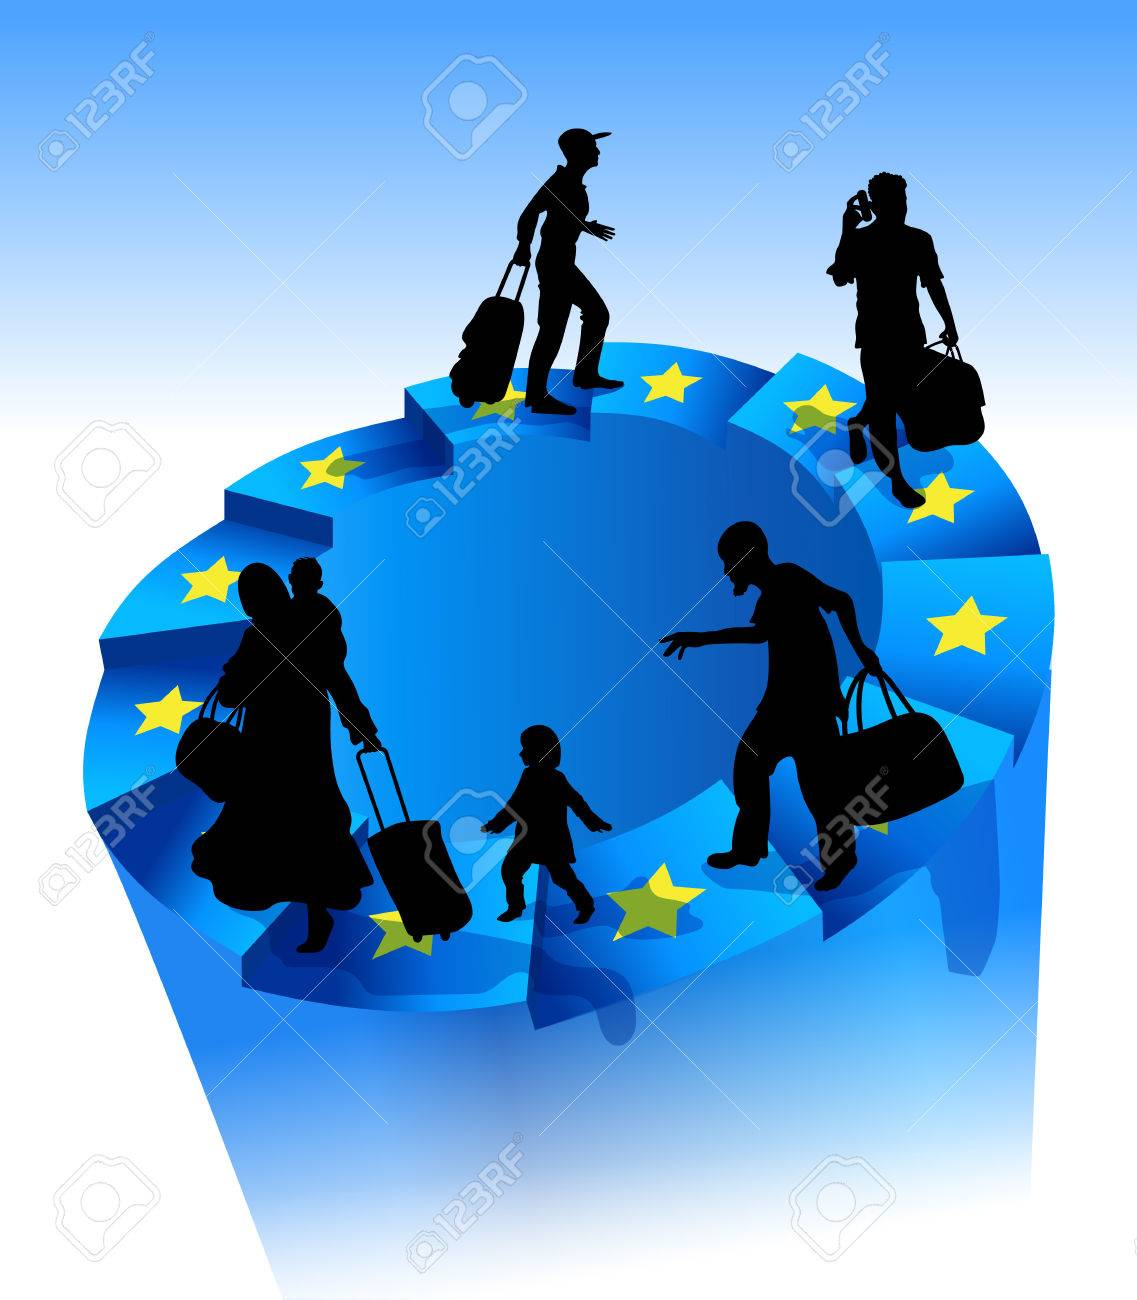 Refugees On An Endless Circular Staircase The Stars Of The European